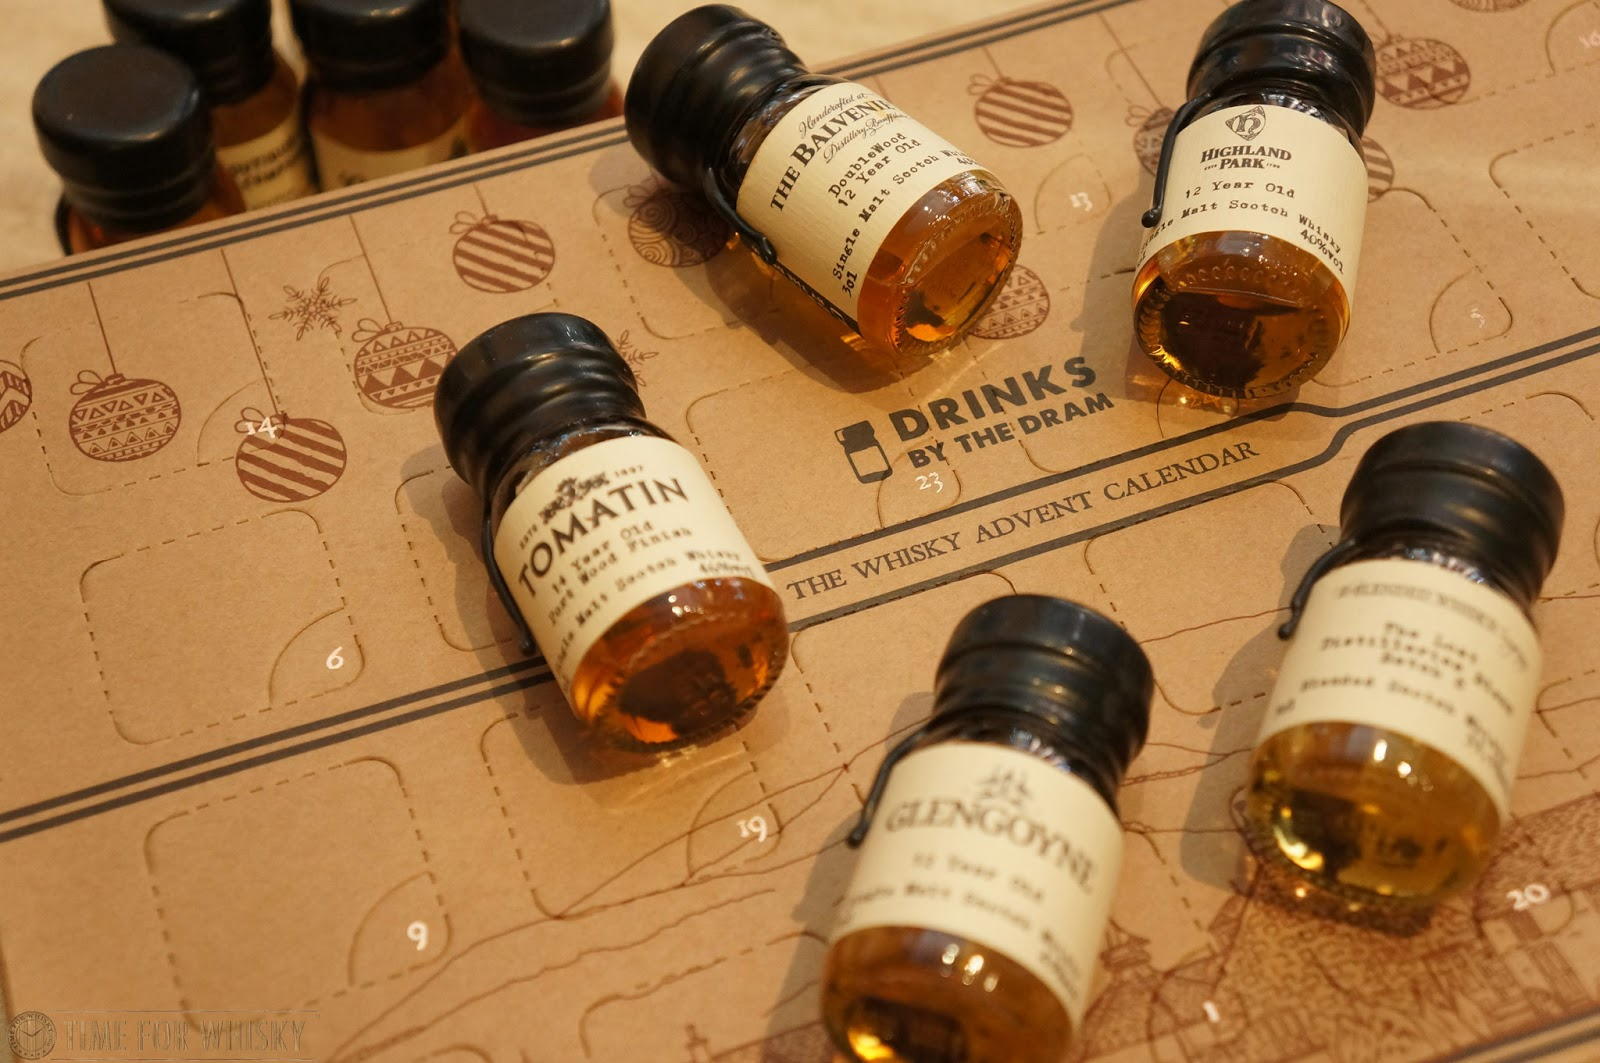 Review Whisky Advent Calendar 2016 By Drinks The Dram